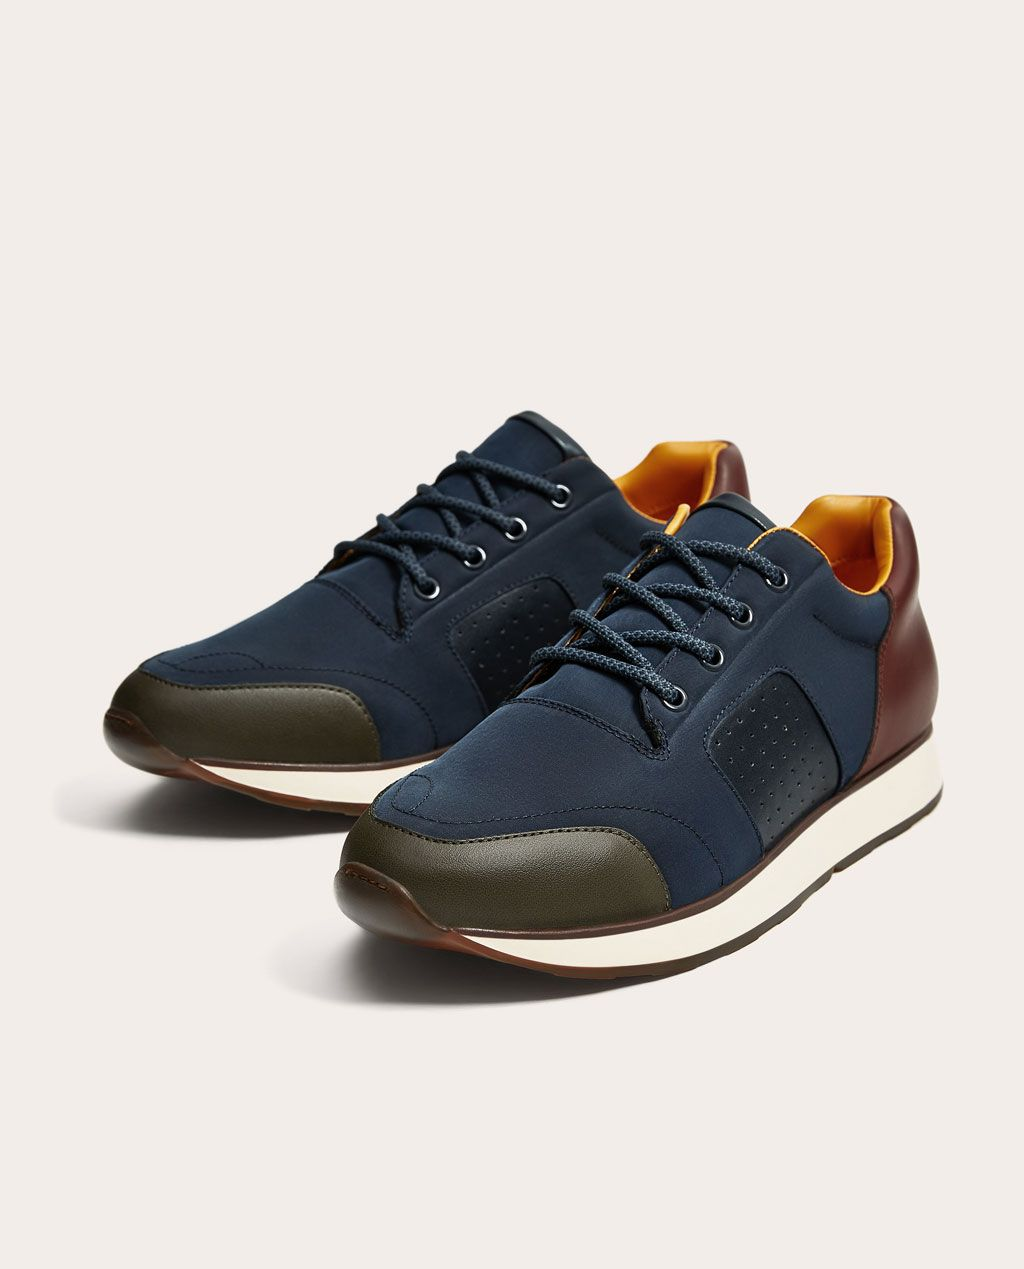 new york 28b7d 5727e Zara men sneakers